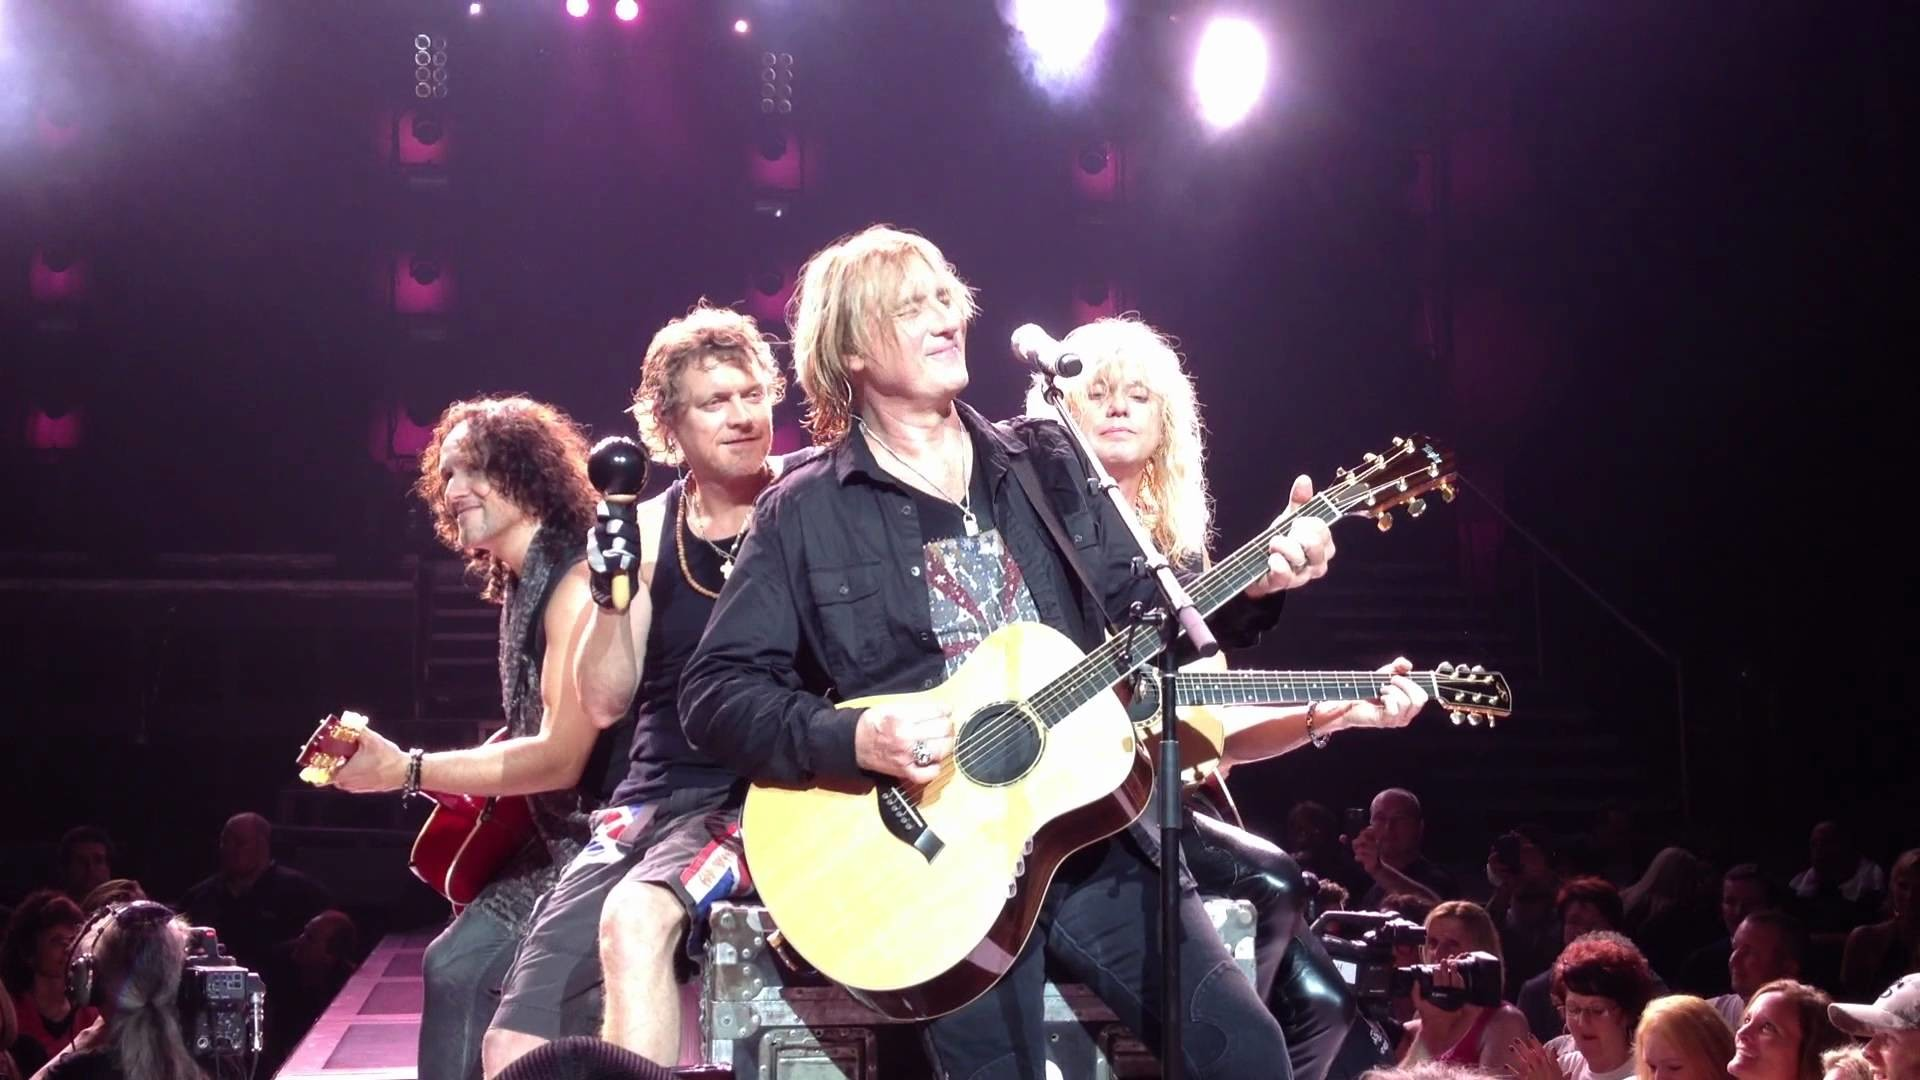 1920x1080 Def Leppard - Acoustic Medley (Live, Mansfield, MA, 2012)